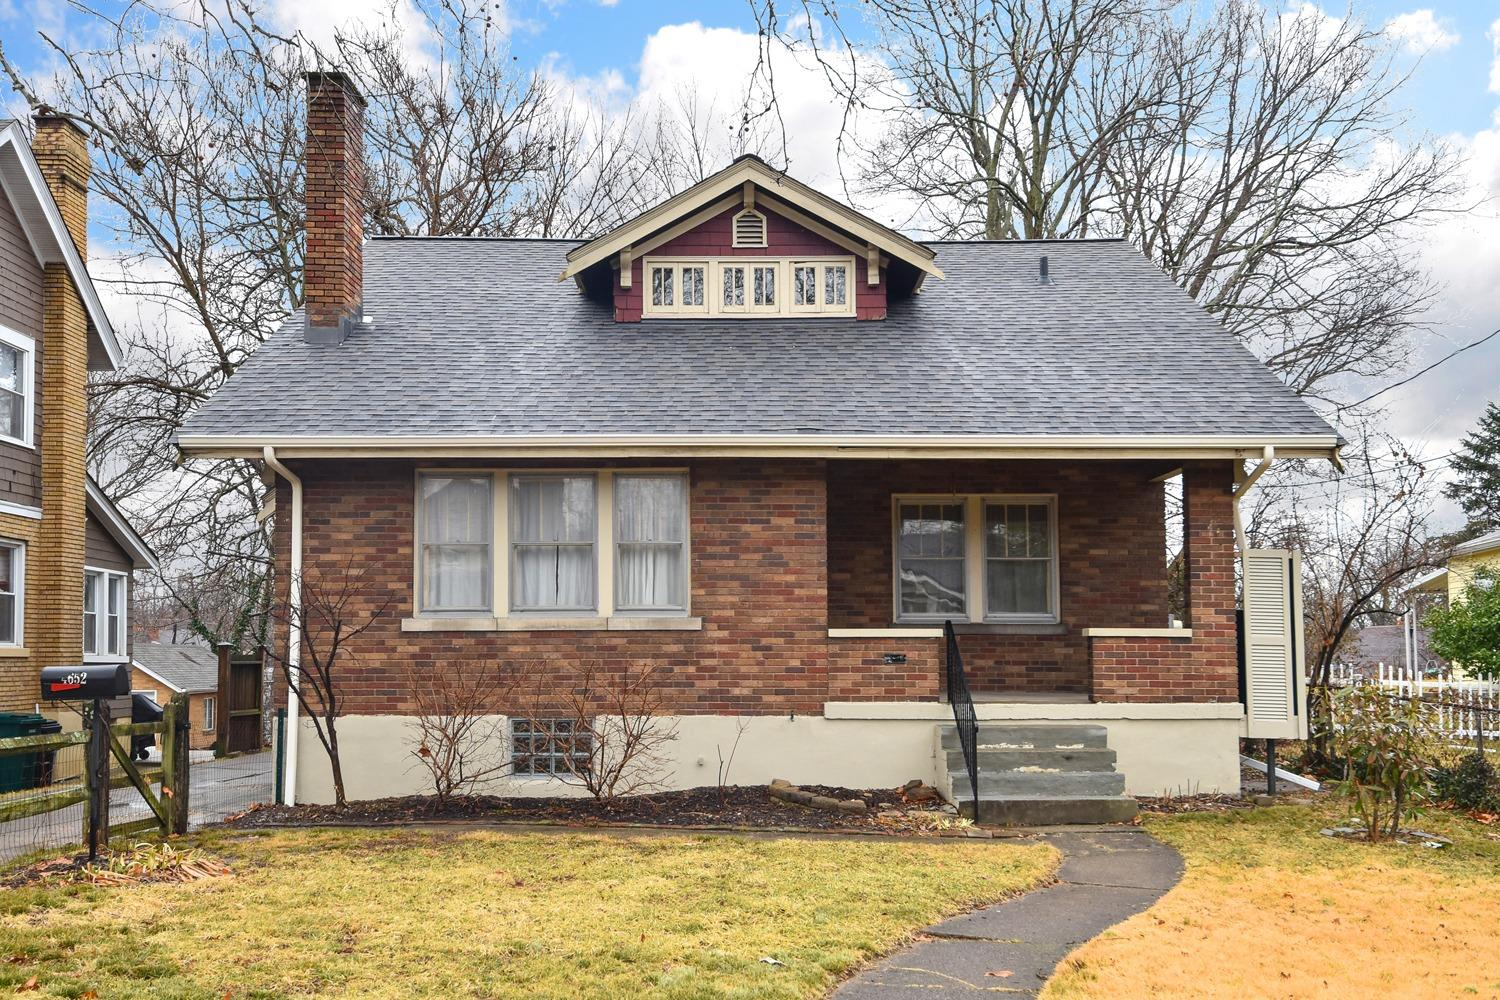 The charmer you have been looking for in Northside! Wood floors throughout, Rookwood fireplace & the natural woodwork exudes quaintness and character. Lots of closet space. Great backyard for entertaining.  Updated kitchen with SS appliances. New roof and gutters!  High efficiency furnace.